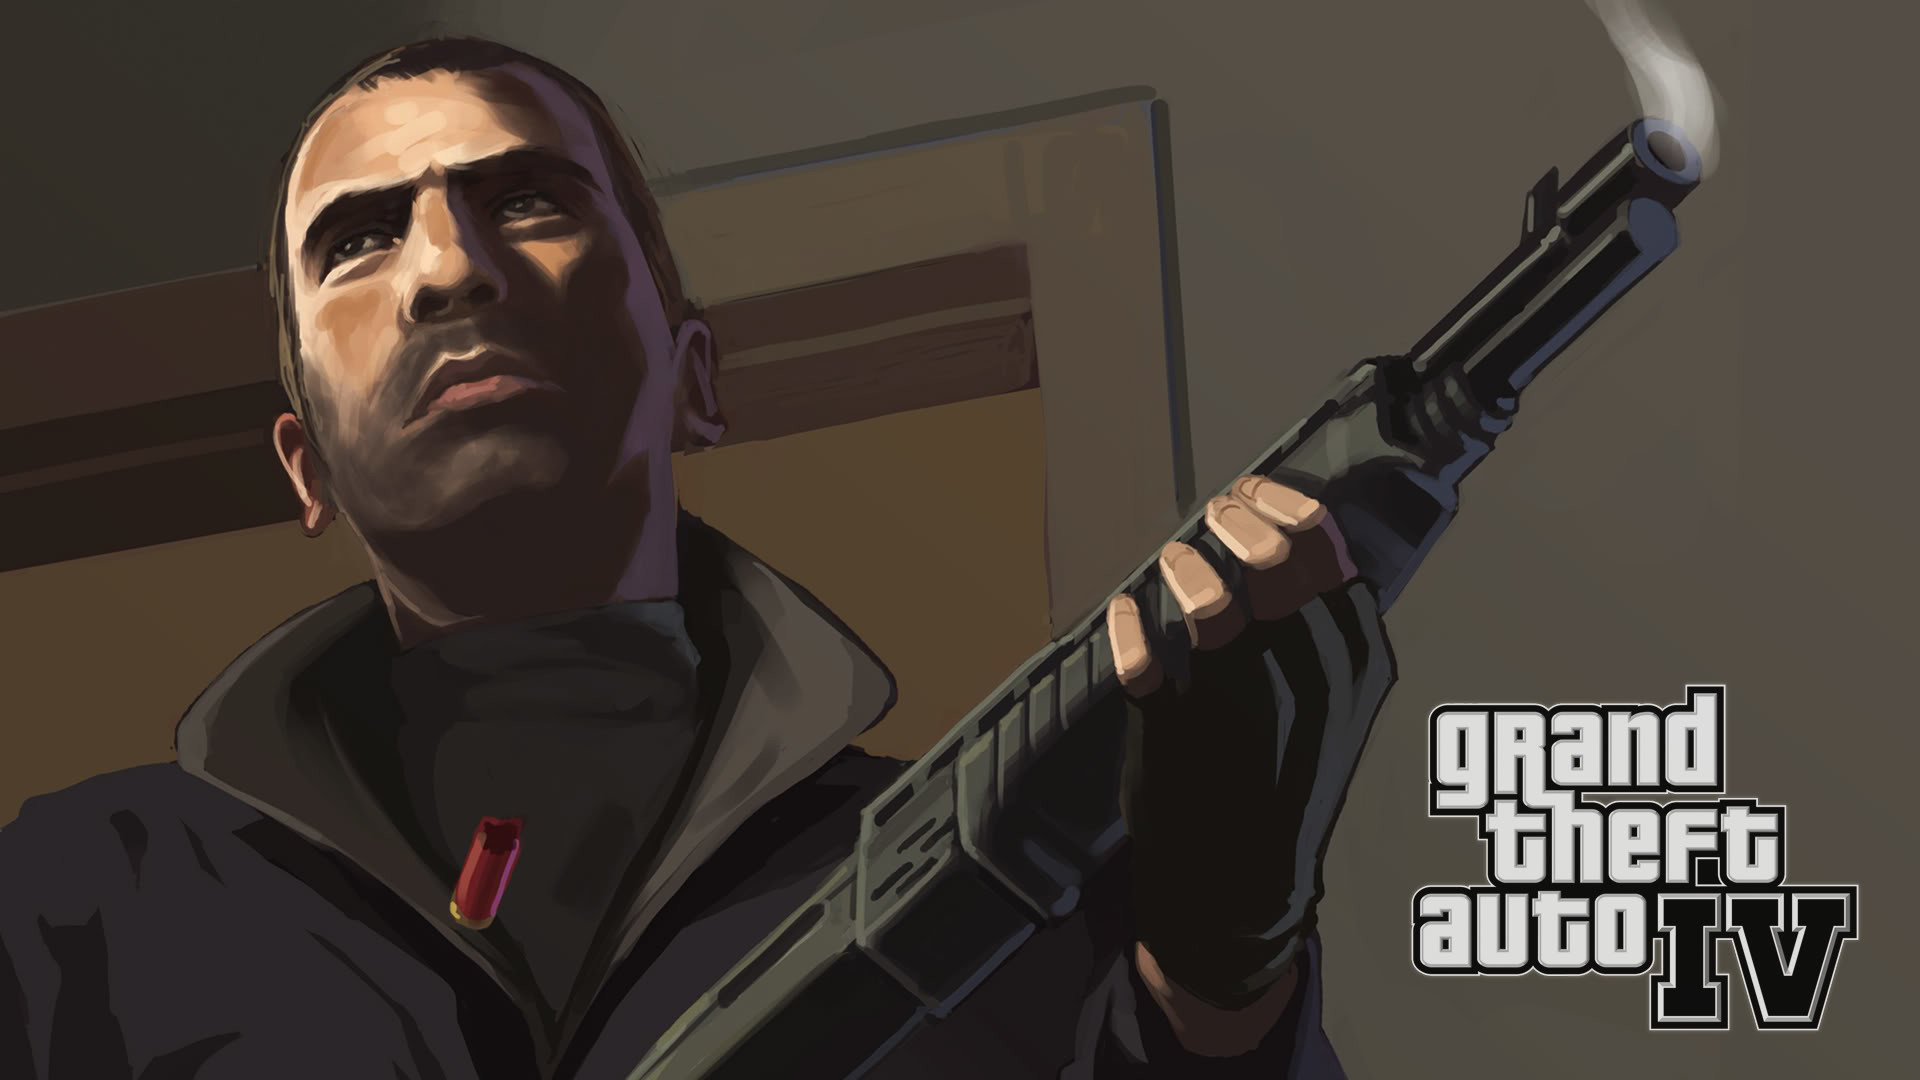 Res: 1920x1080, Niko Grand Theft Auto IV